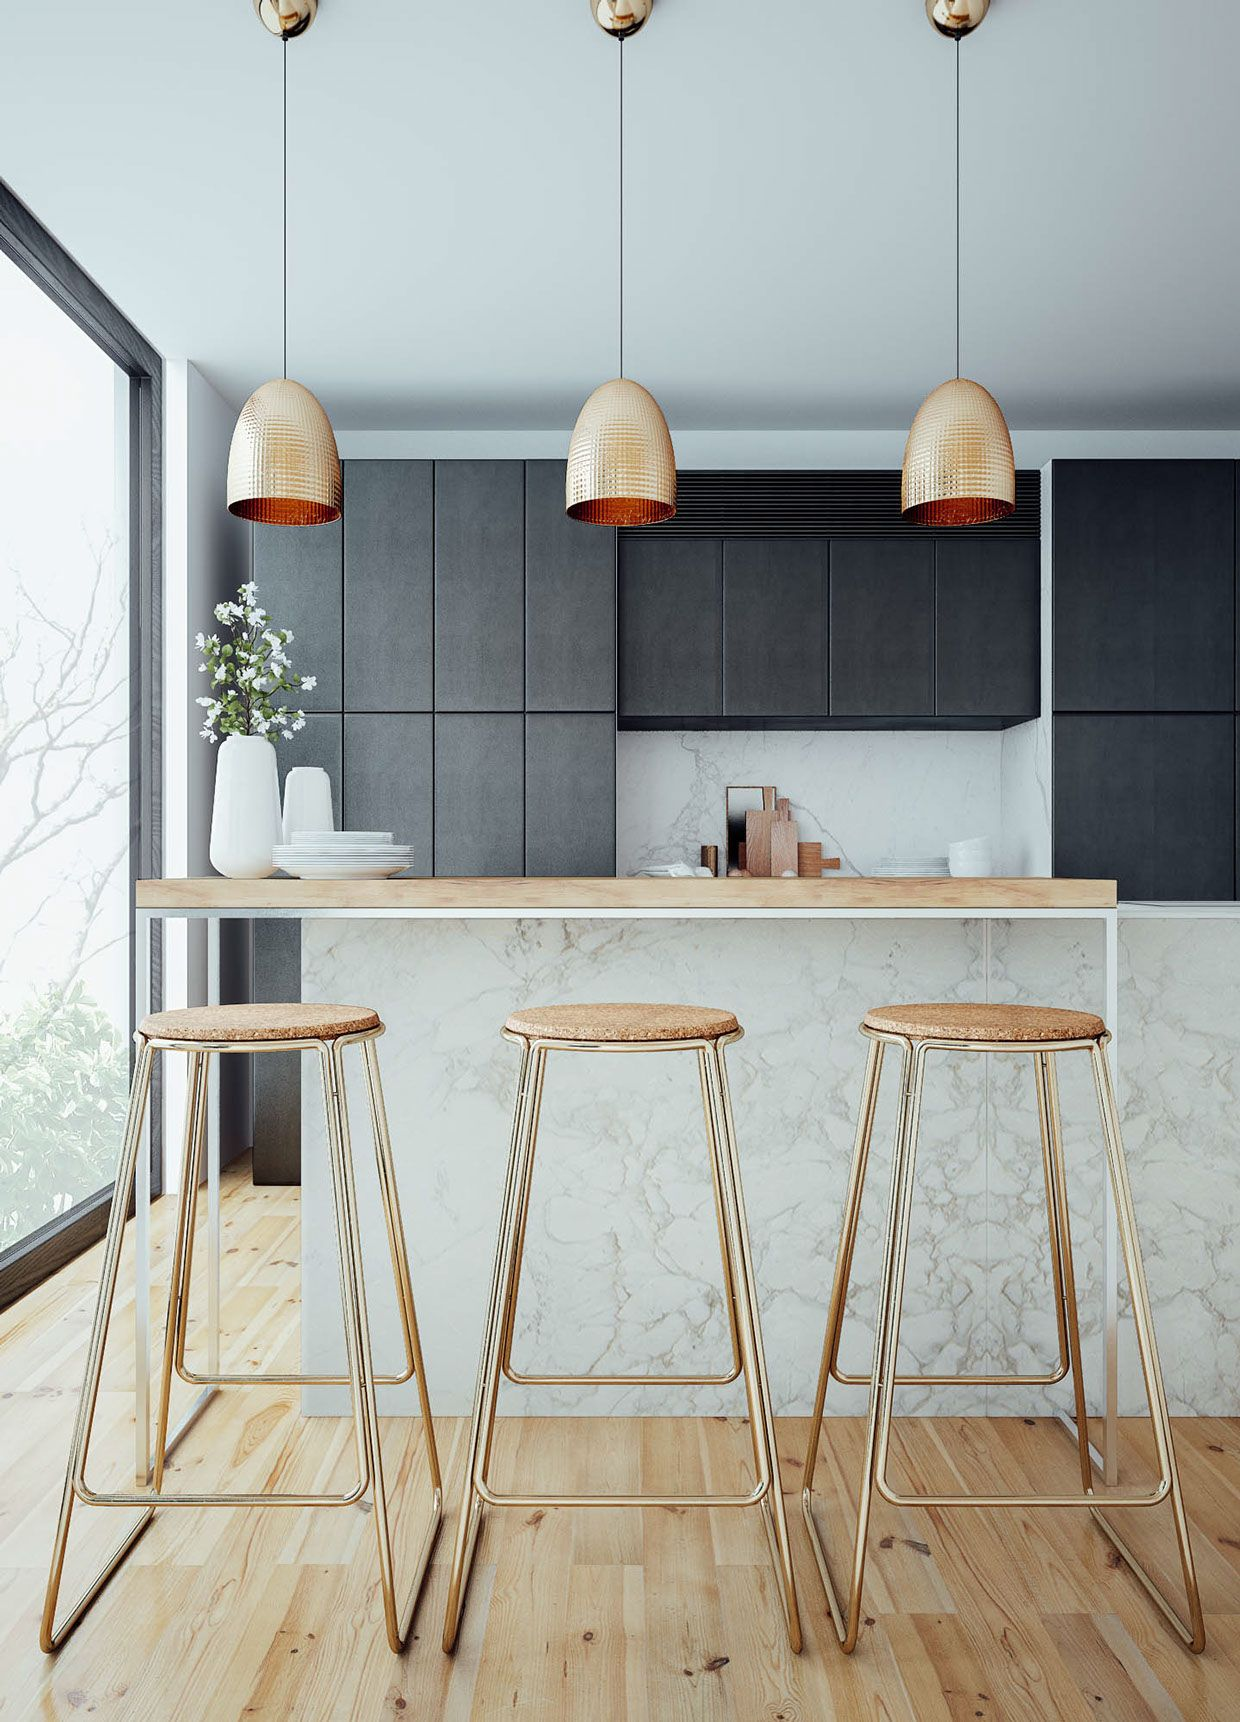 Copper And Brass Make These Bar Stools A Beautiful Statement Piece - Kitchen pendant lighting brass